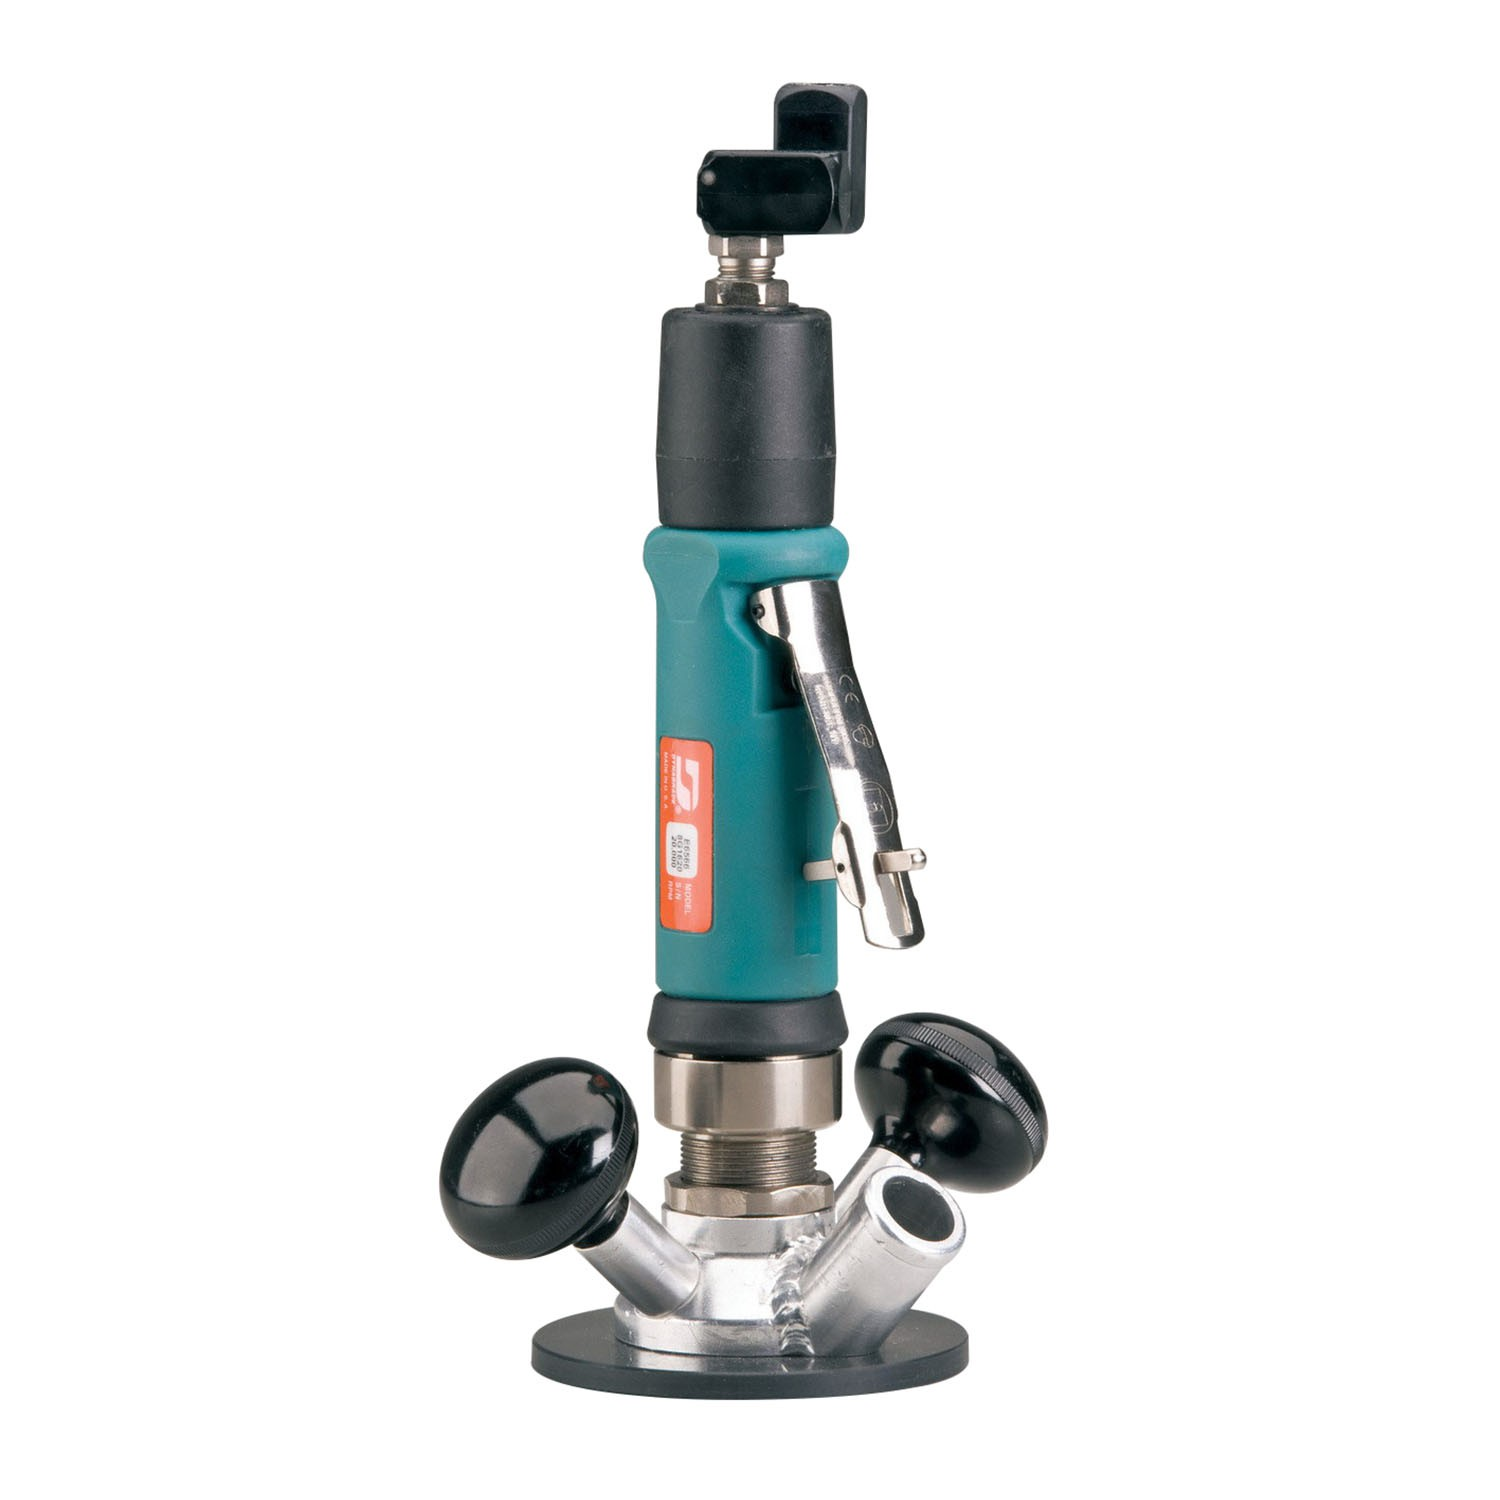 Dynabrade® 51333 Gearless Central Vacuum Router, 20000 rpm, 33 cfm, 90 psi (Bare Tool)